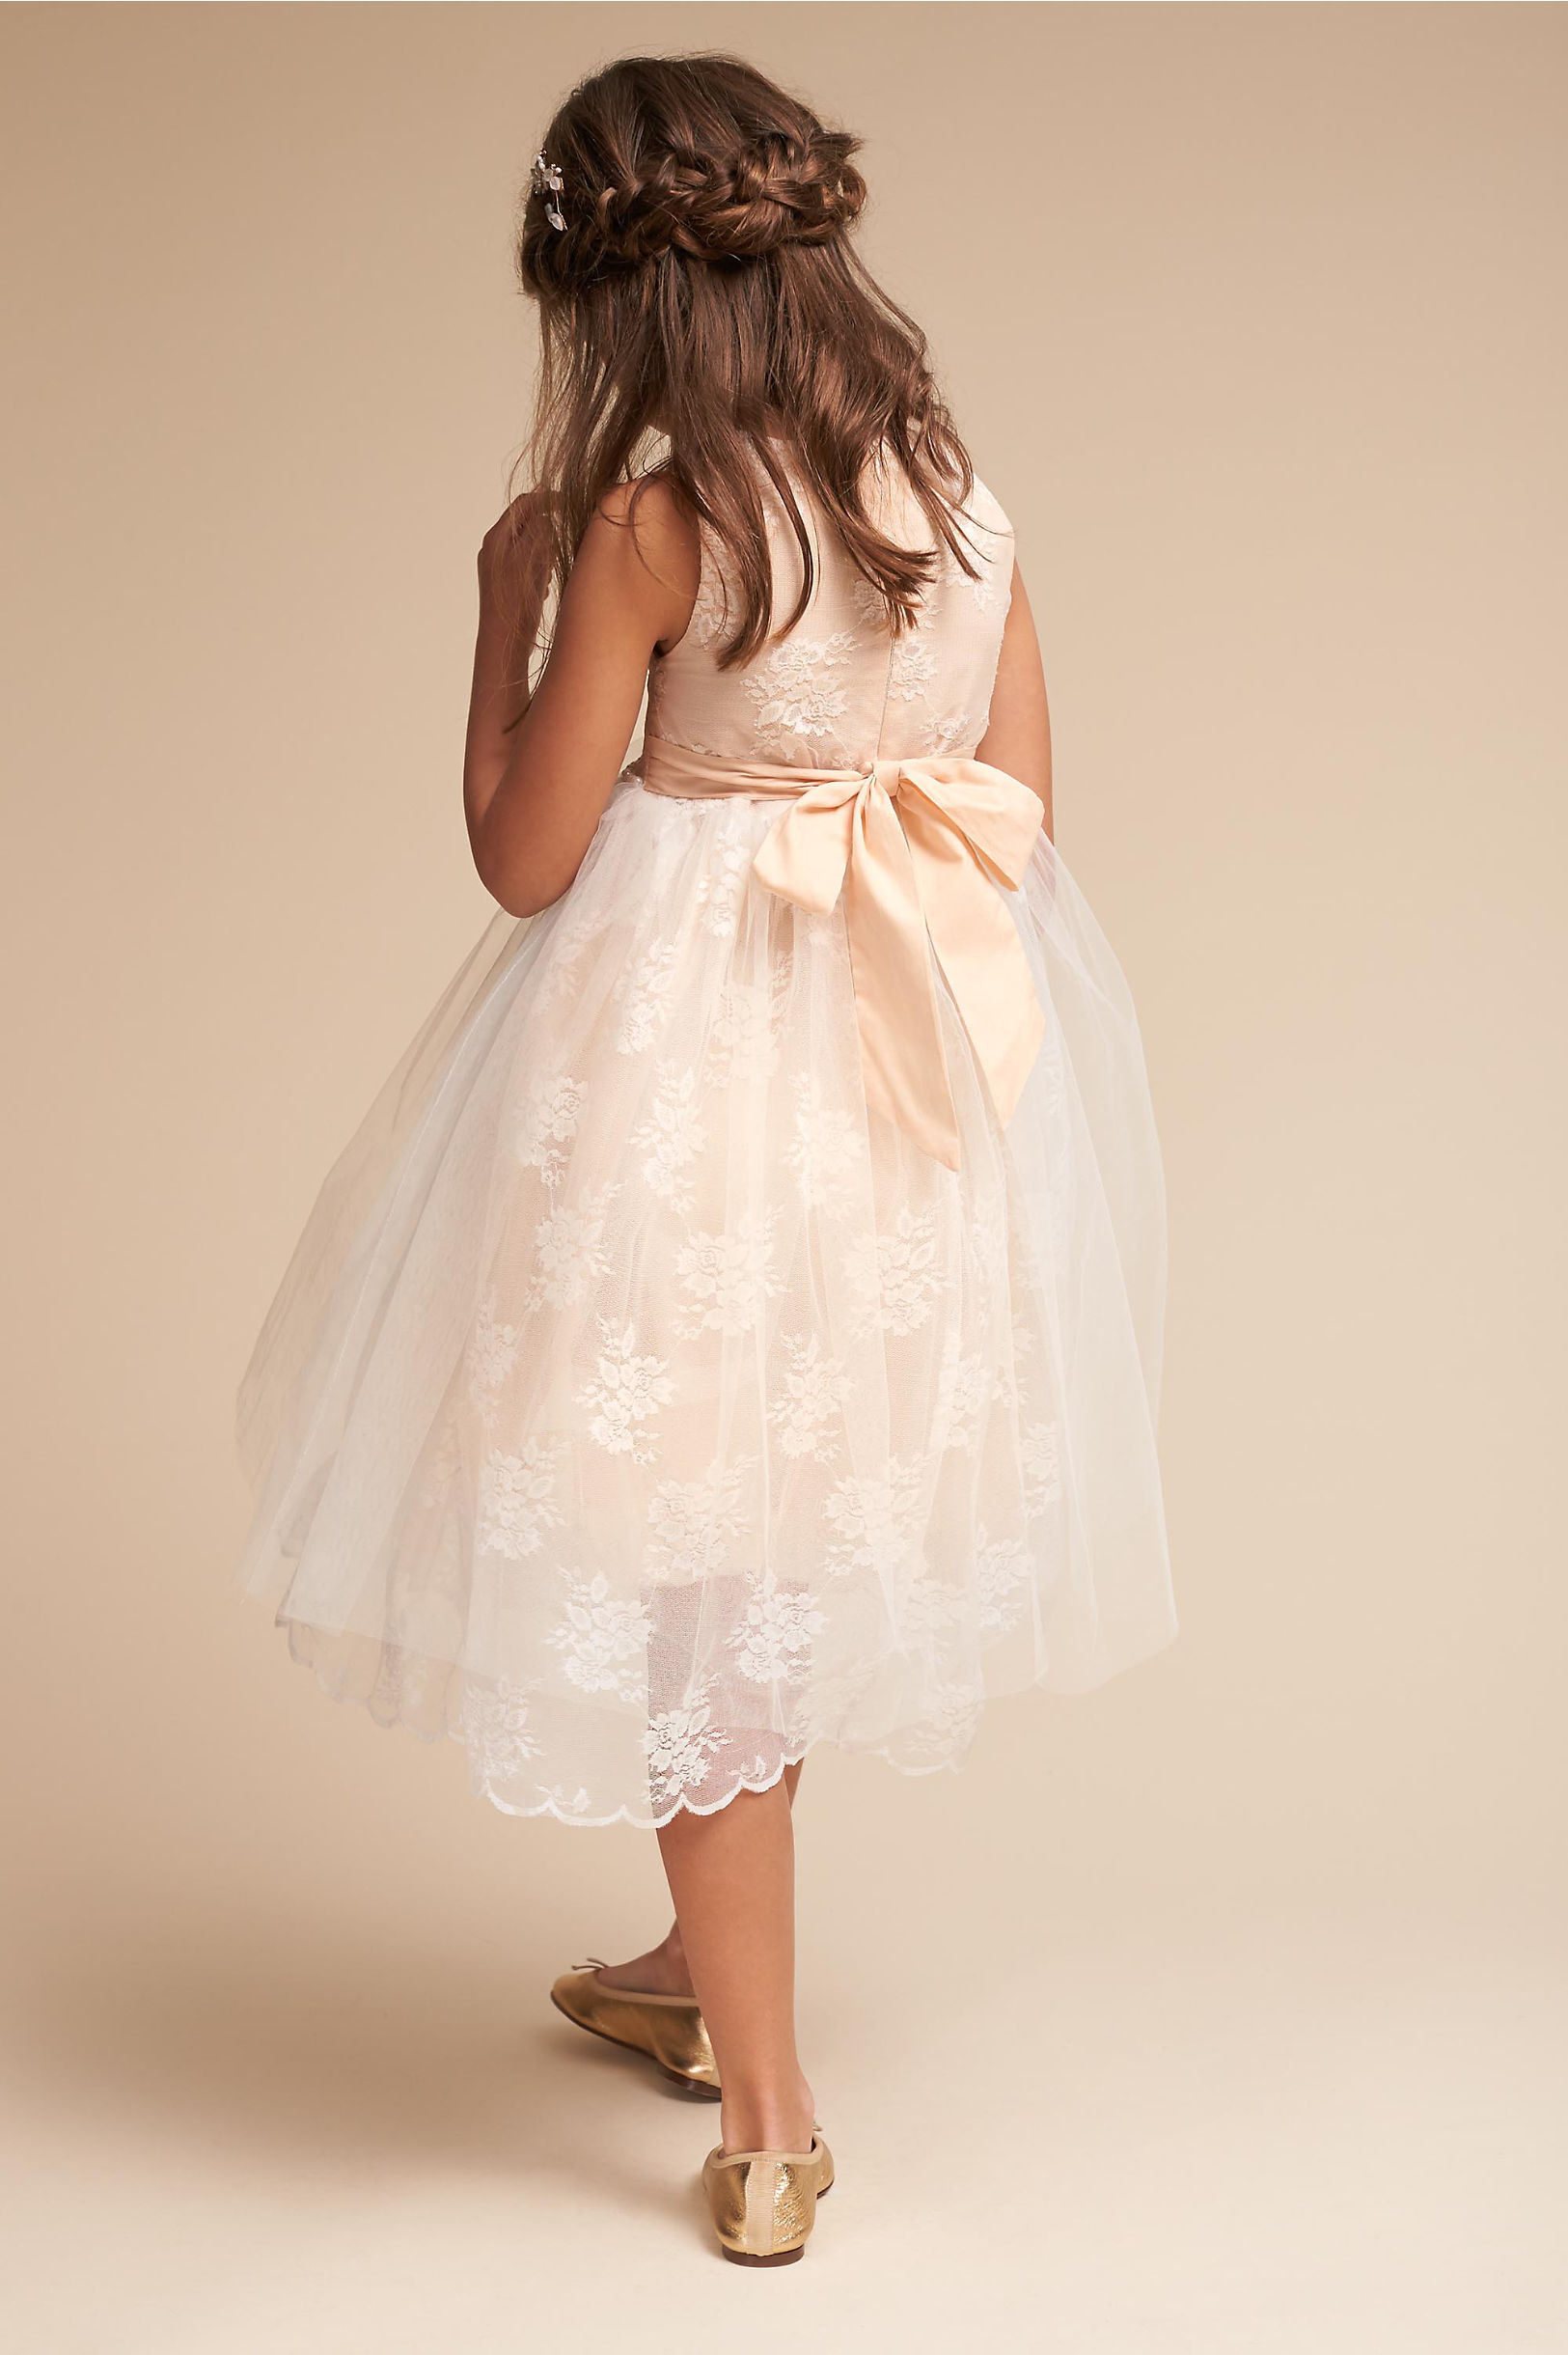 BHLDN Alix Flower Girl Dress with Bow